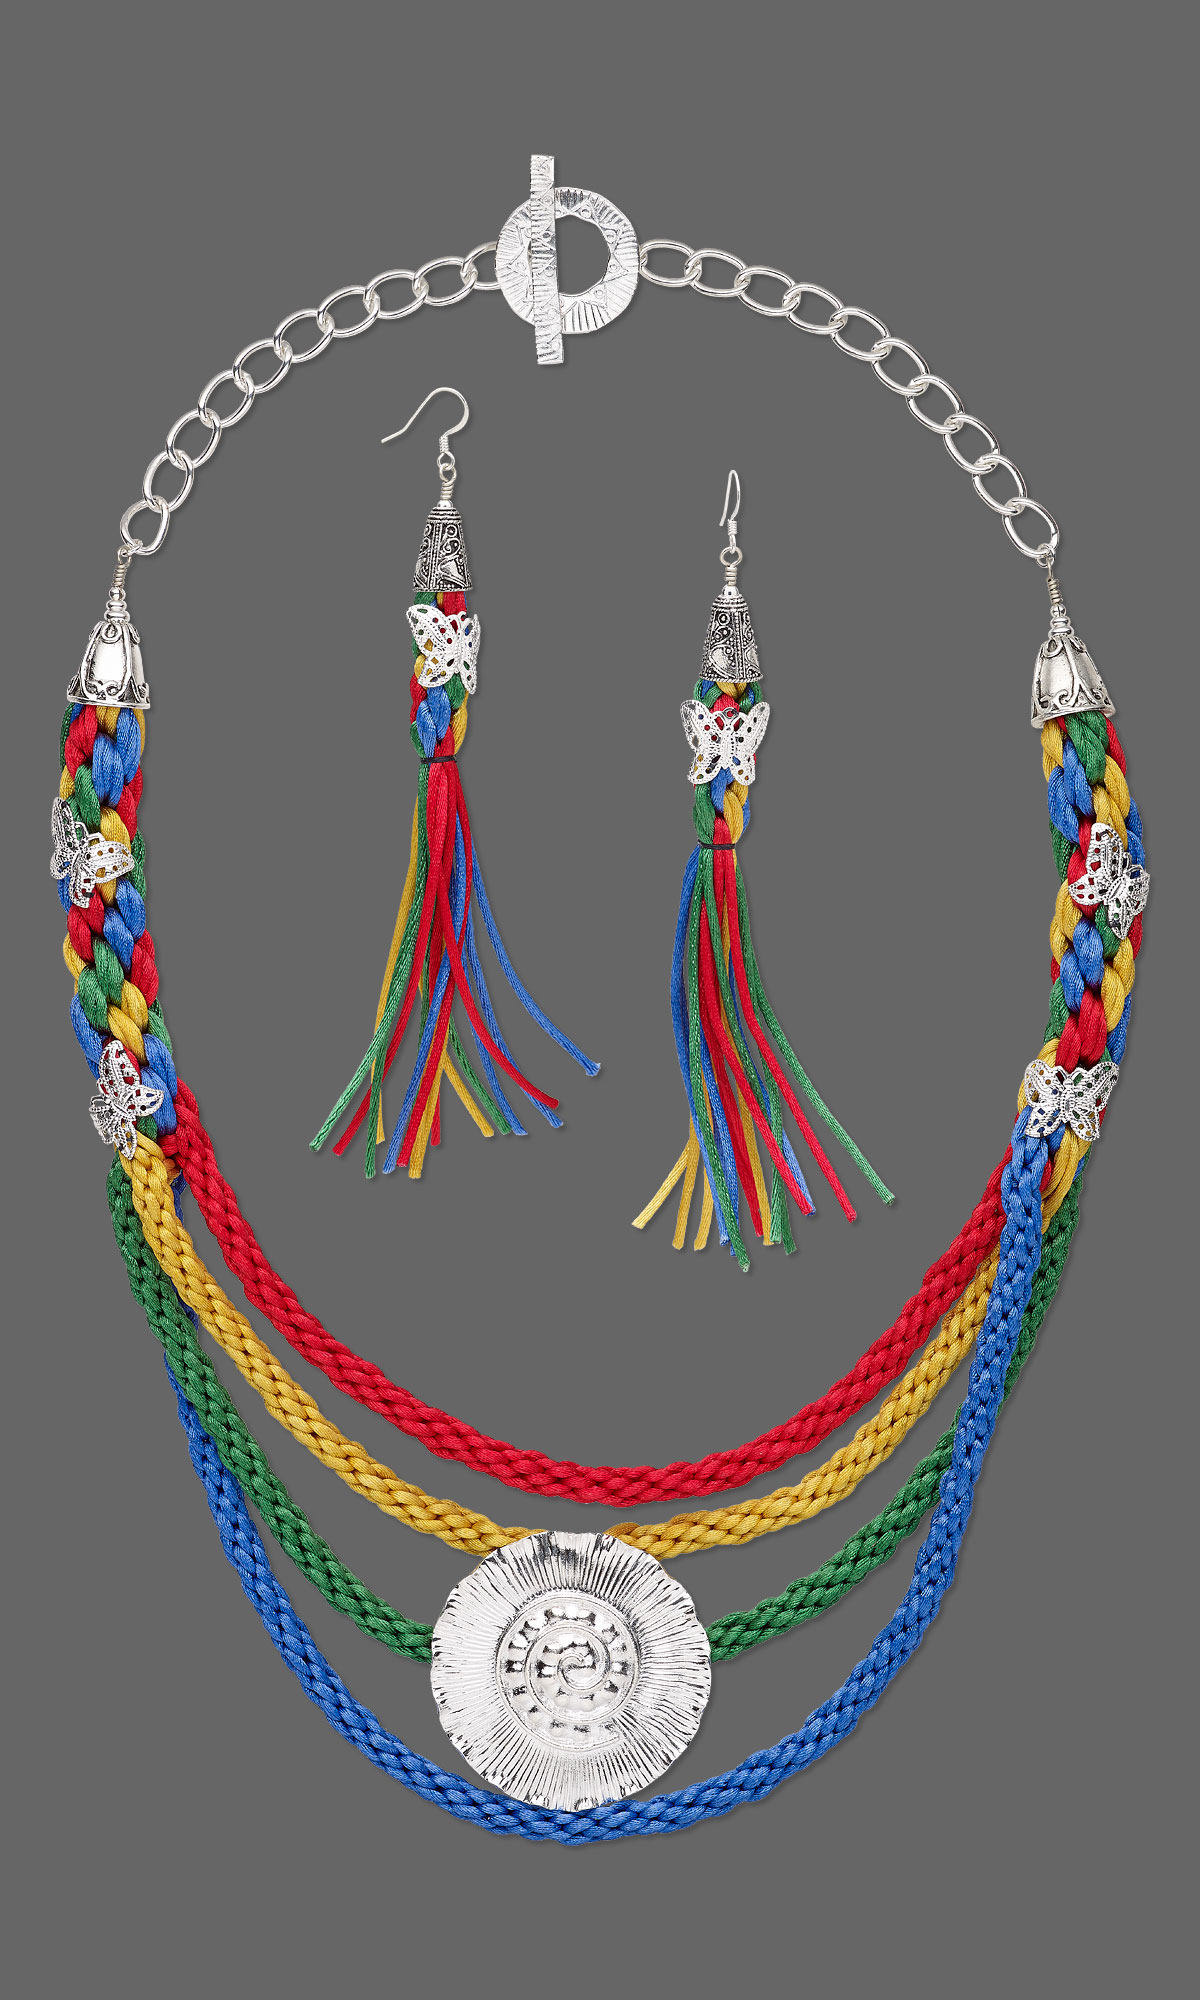 Jewelry Design Multi Strand Necklace With Kumihimo Mousetail Cord